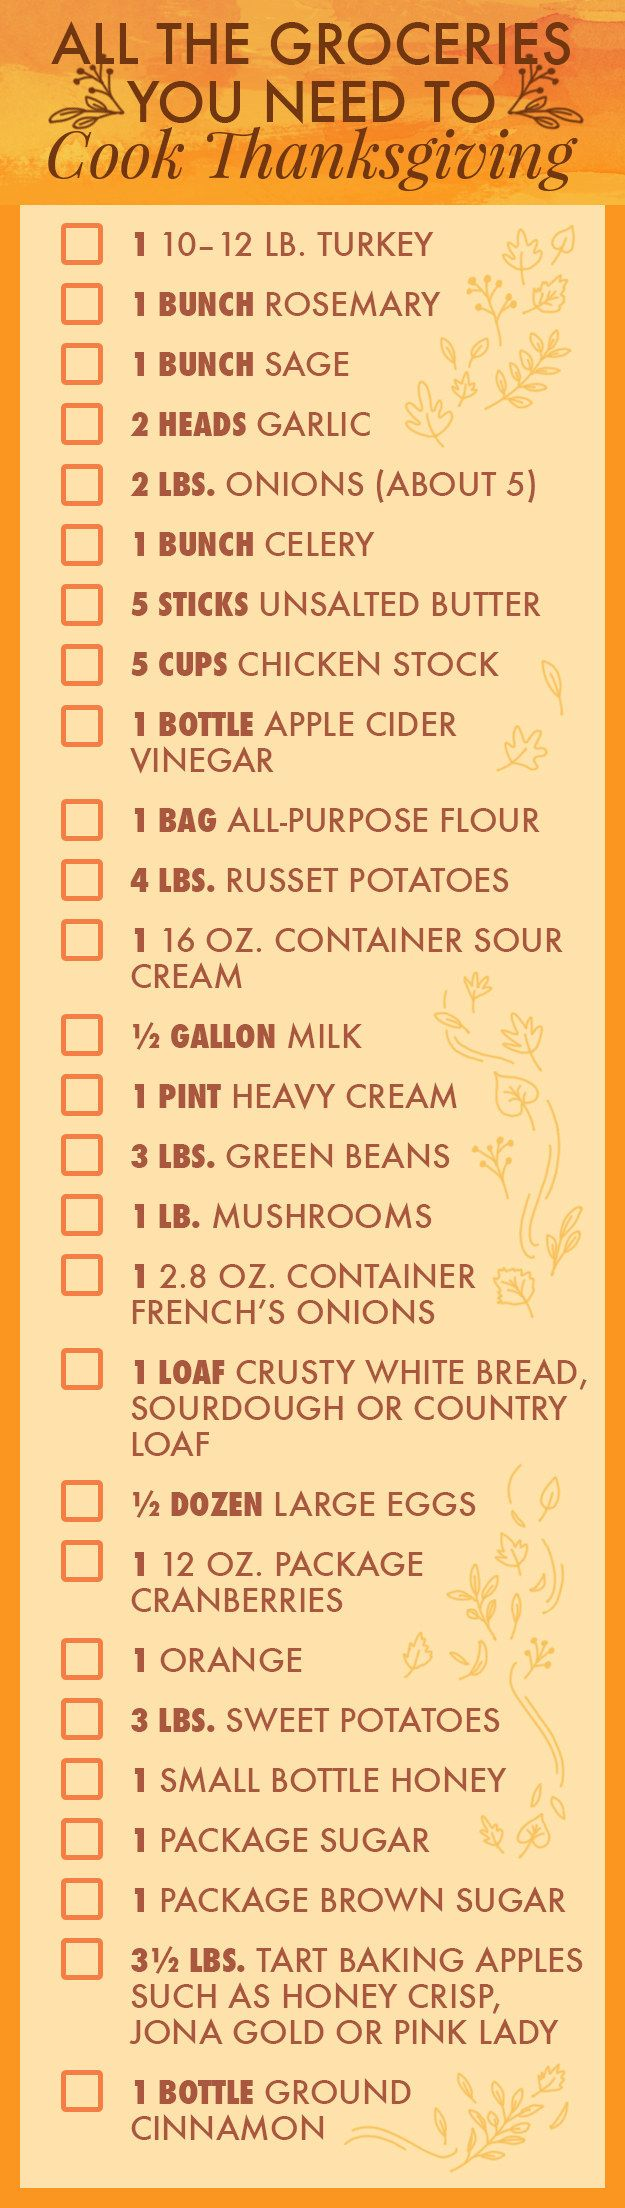 Here's your shopping list and a super helpful *printable* PDF.